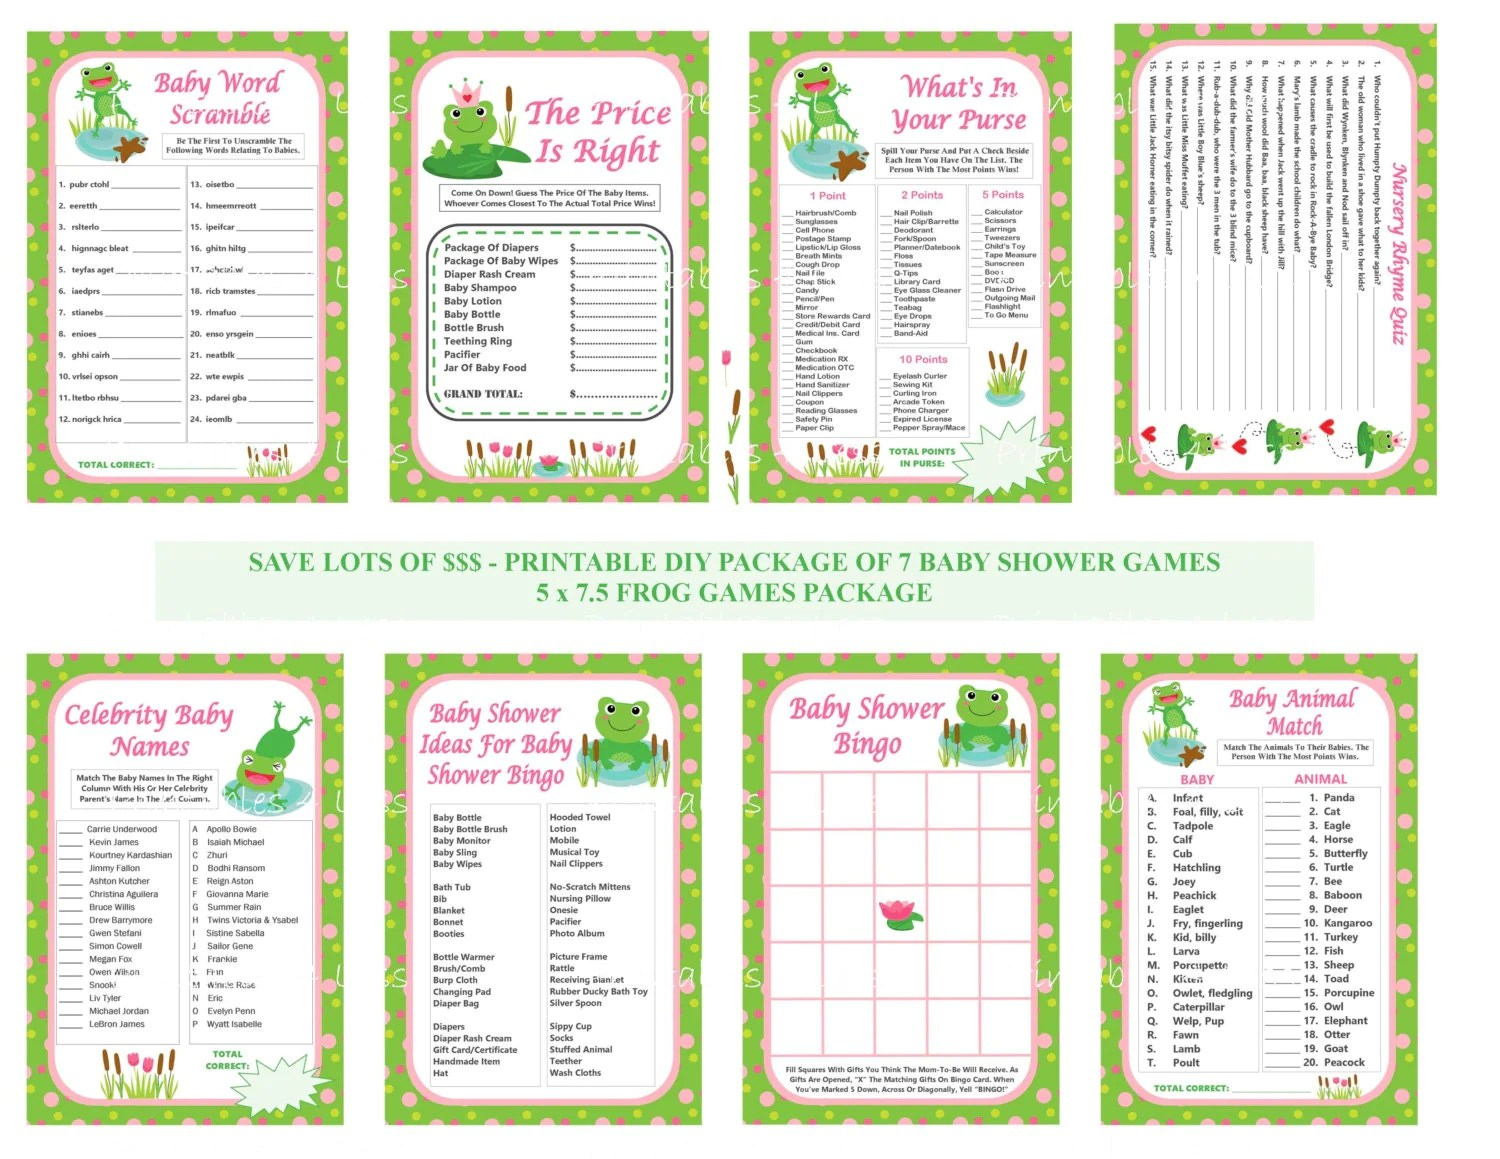 Frog Baby Shower Games Printable Frog Baby Games Diy Frog